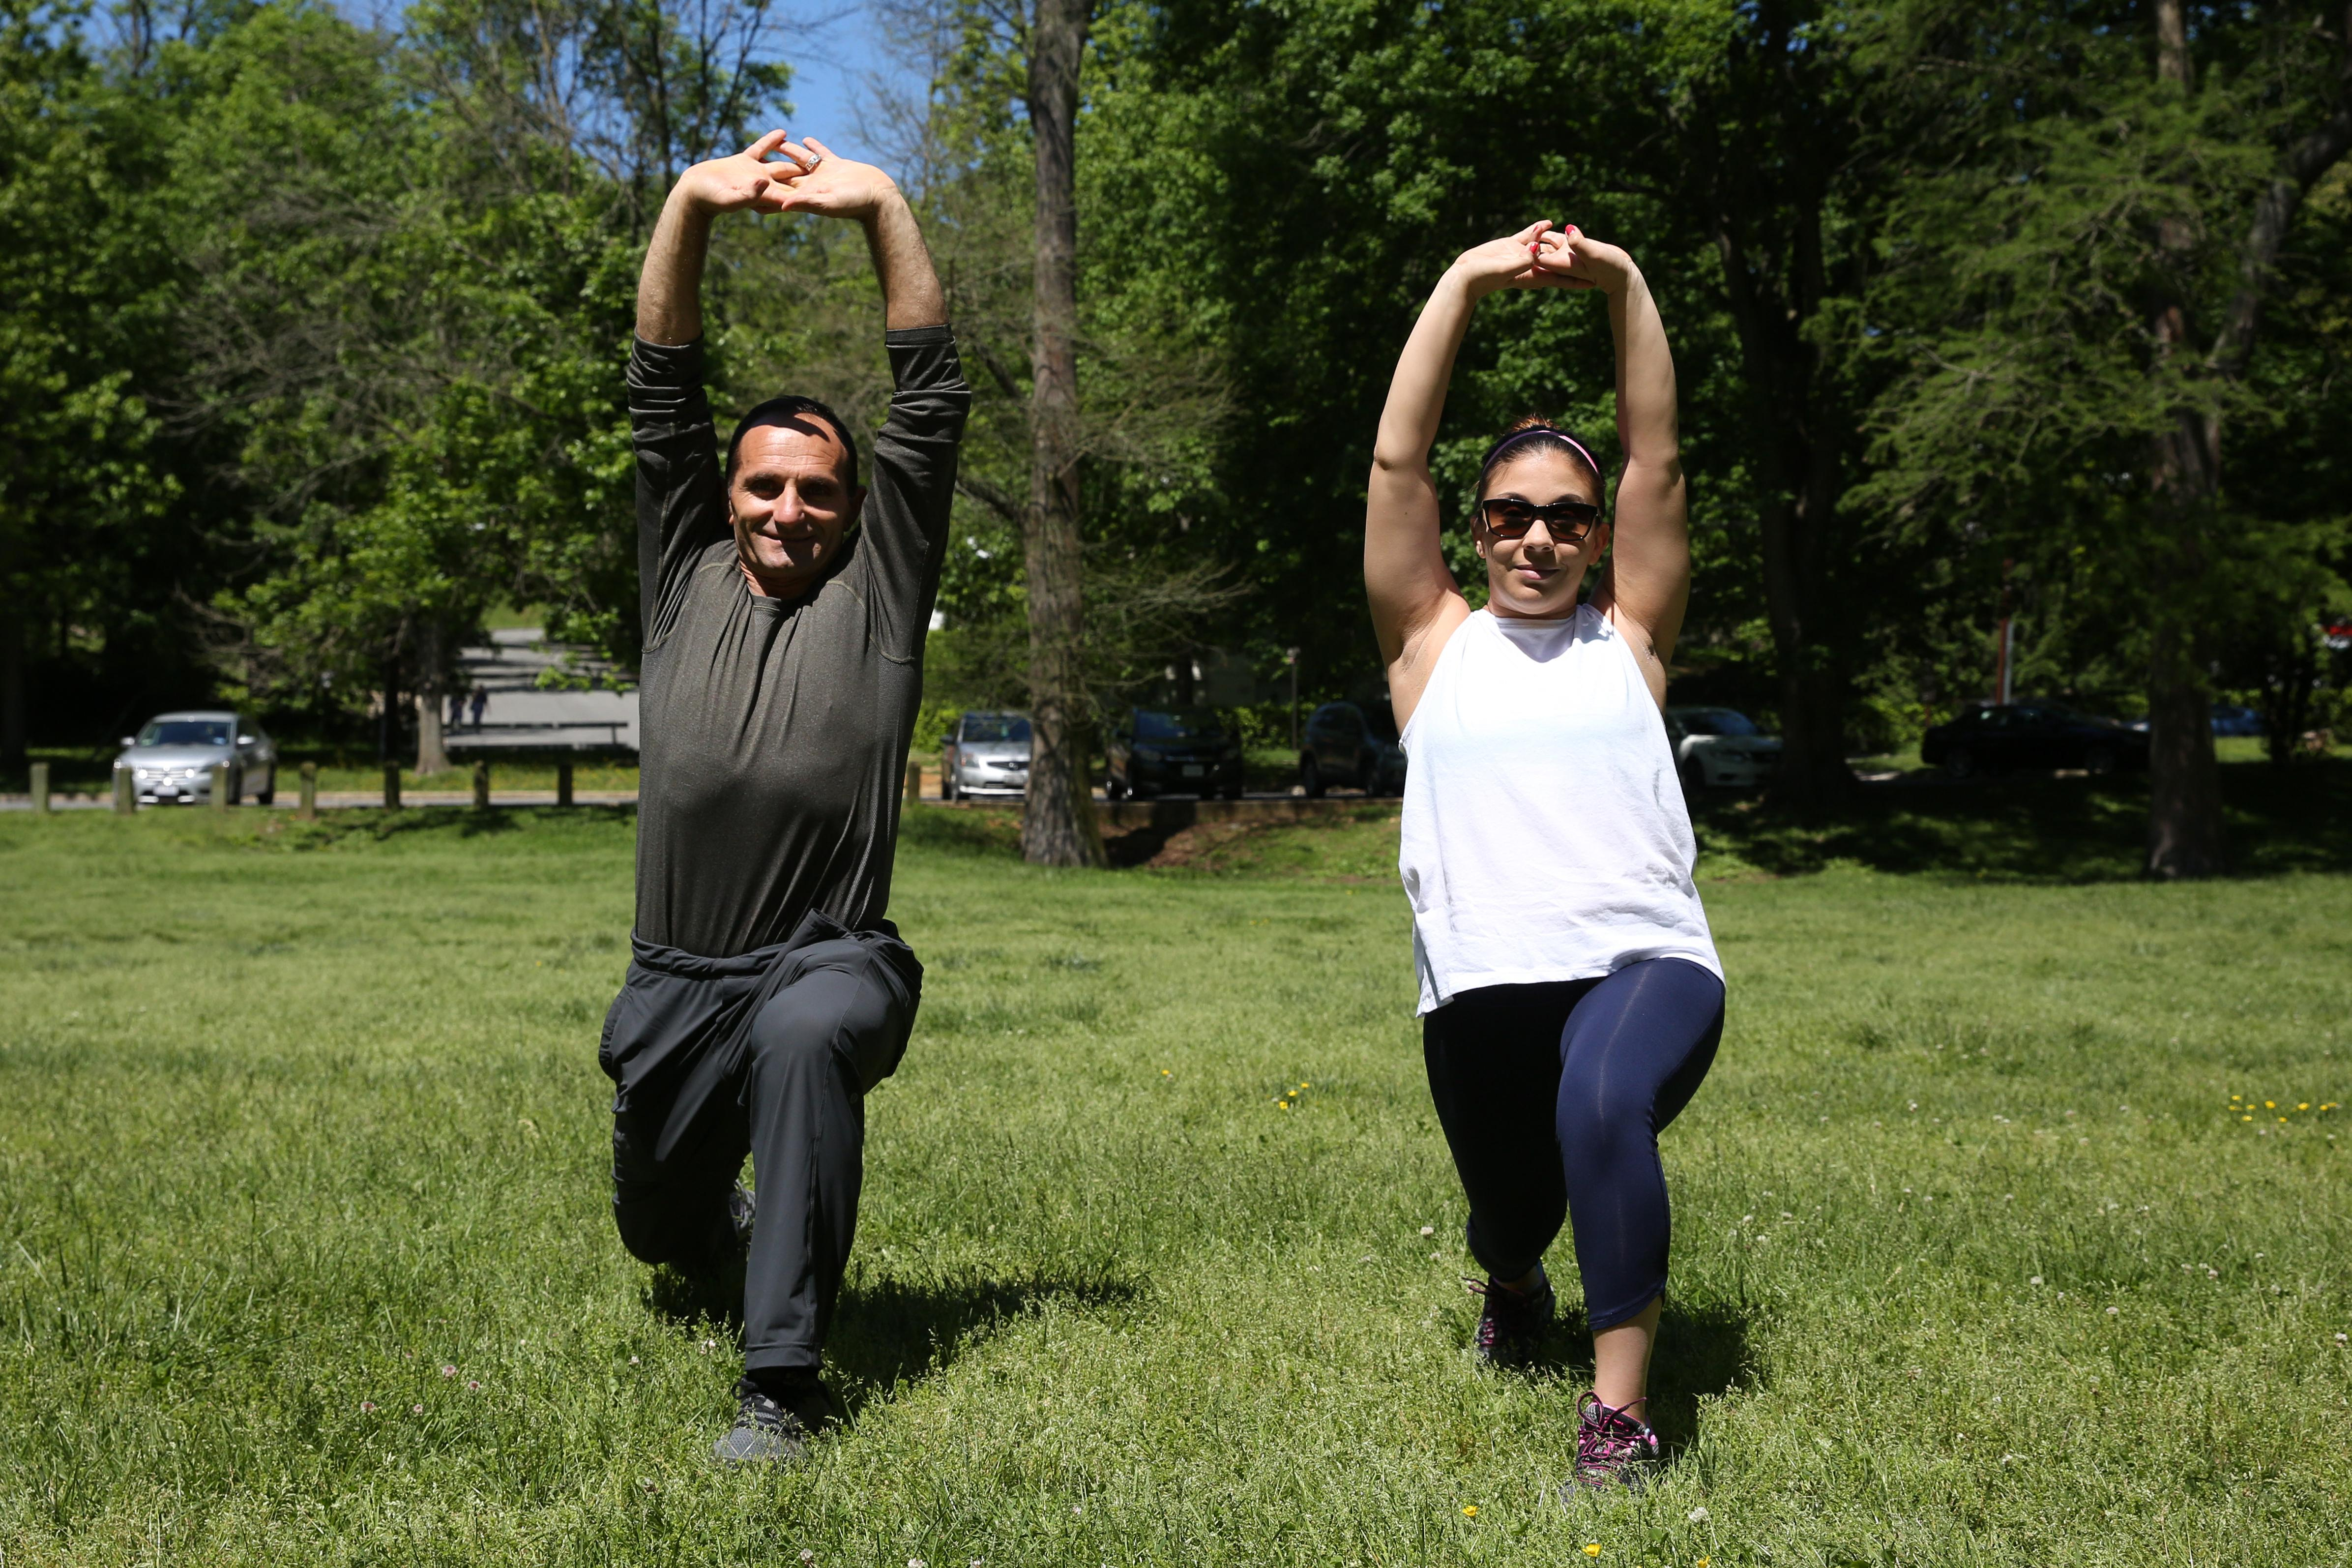 Everyone meet VELUXE personal trainer Beqir Gjoka  and assistant editor Tina Irizarry. They are going to show you some exercises you can do anywhere in the city without a gym. If you are interested in working with Beqir, please visit Veluxe.com (Amanda Andrade-Rhoades/DC Refined)